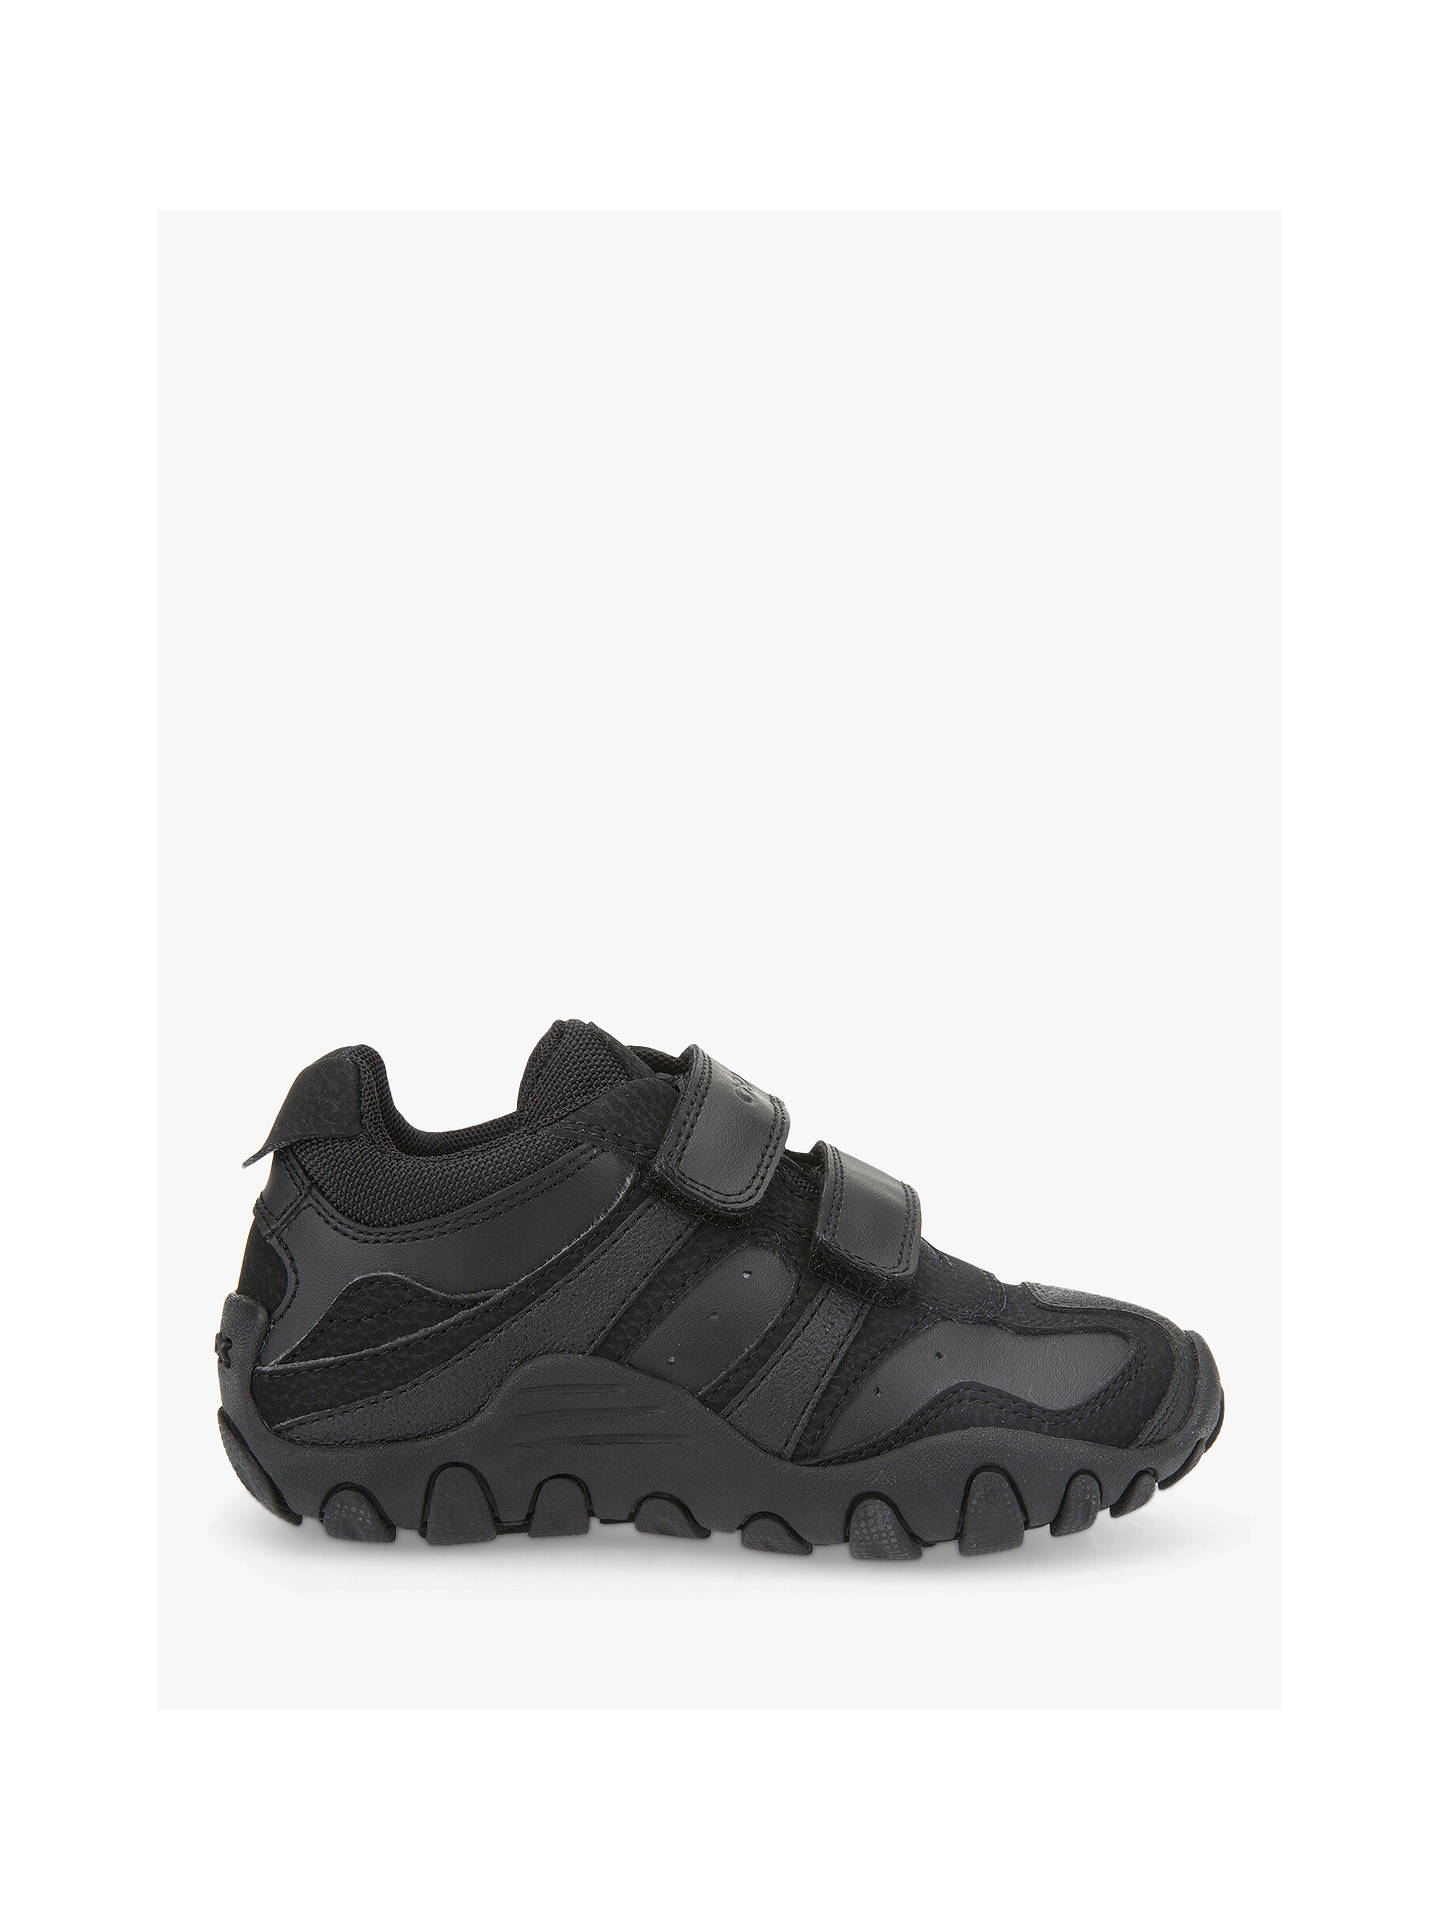 buy online 76398 f89dd Geox Children's Crush Trainers, Black at John Lewis & Partners